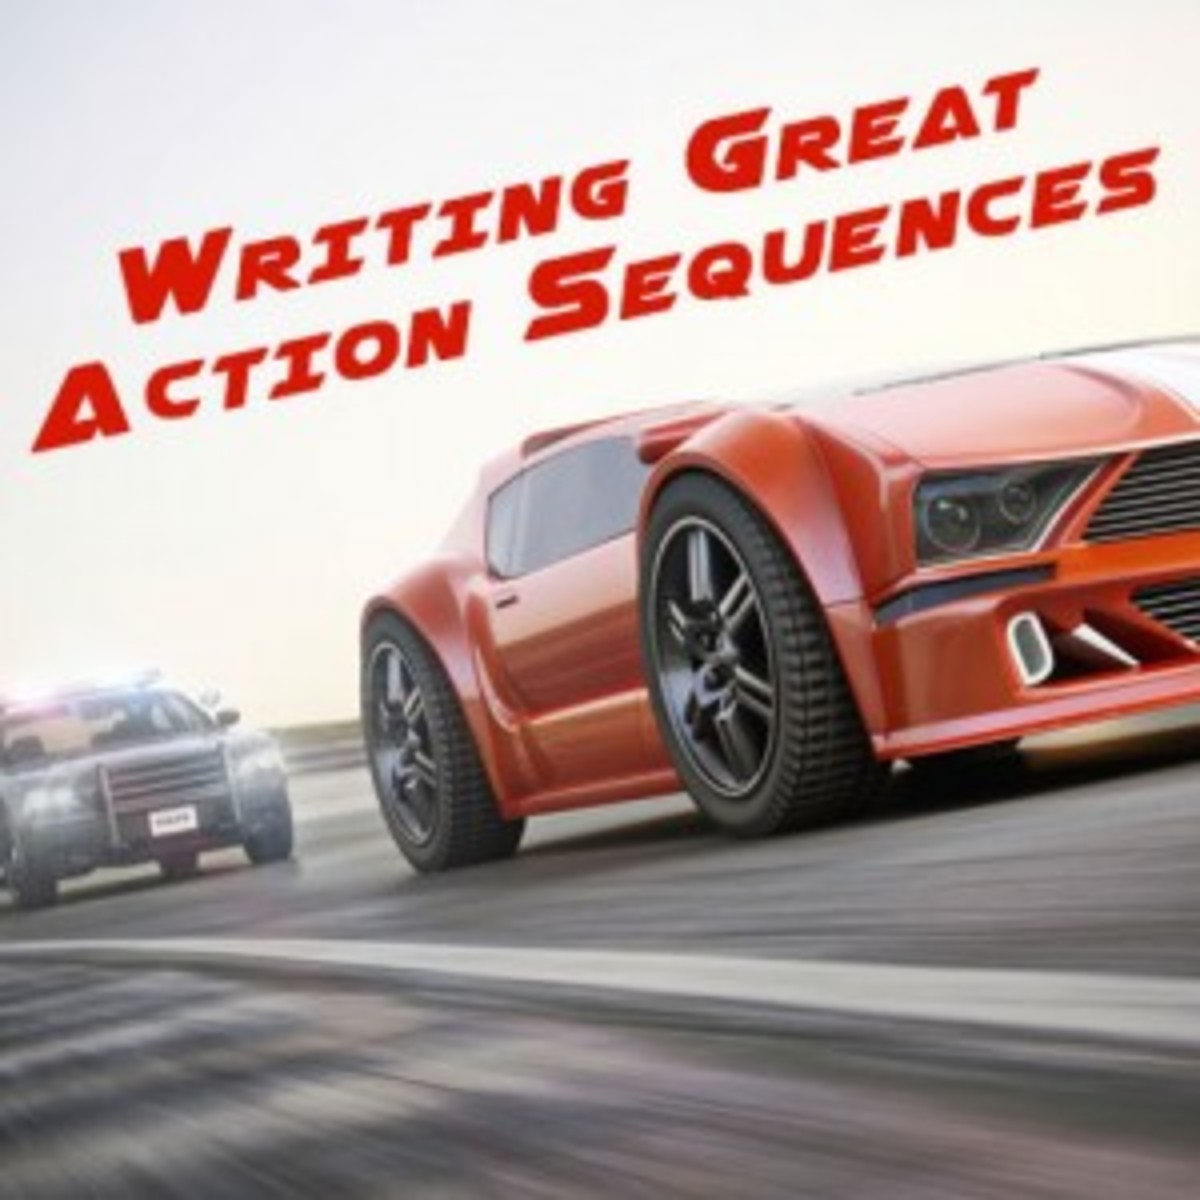 Writing Great Action Sequences by Glenn Benest | Script Magazine #scriptchat #screenwriting #amwriting